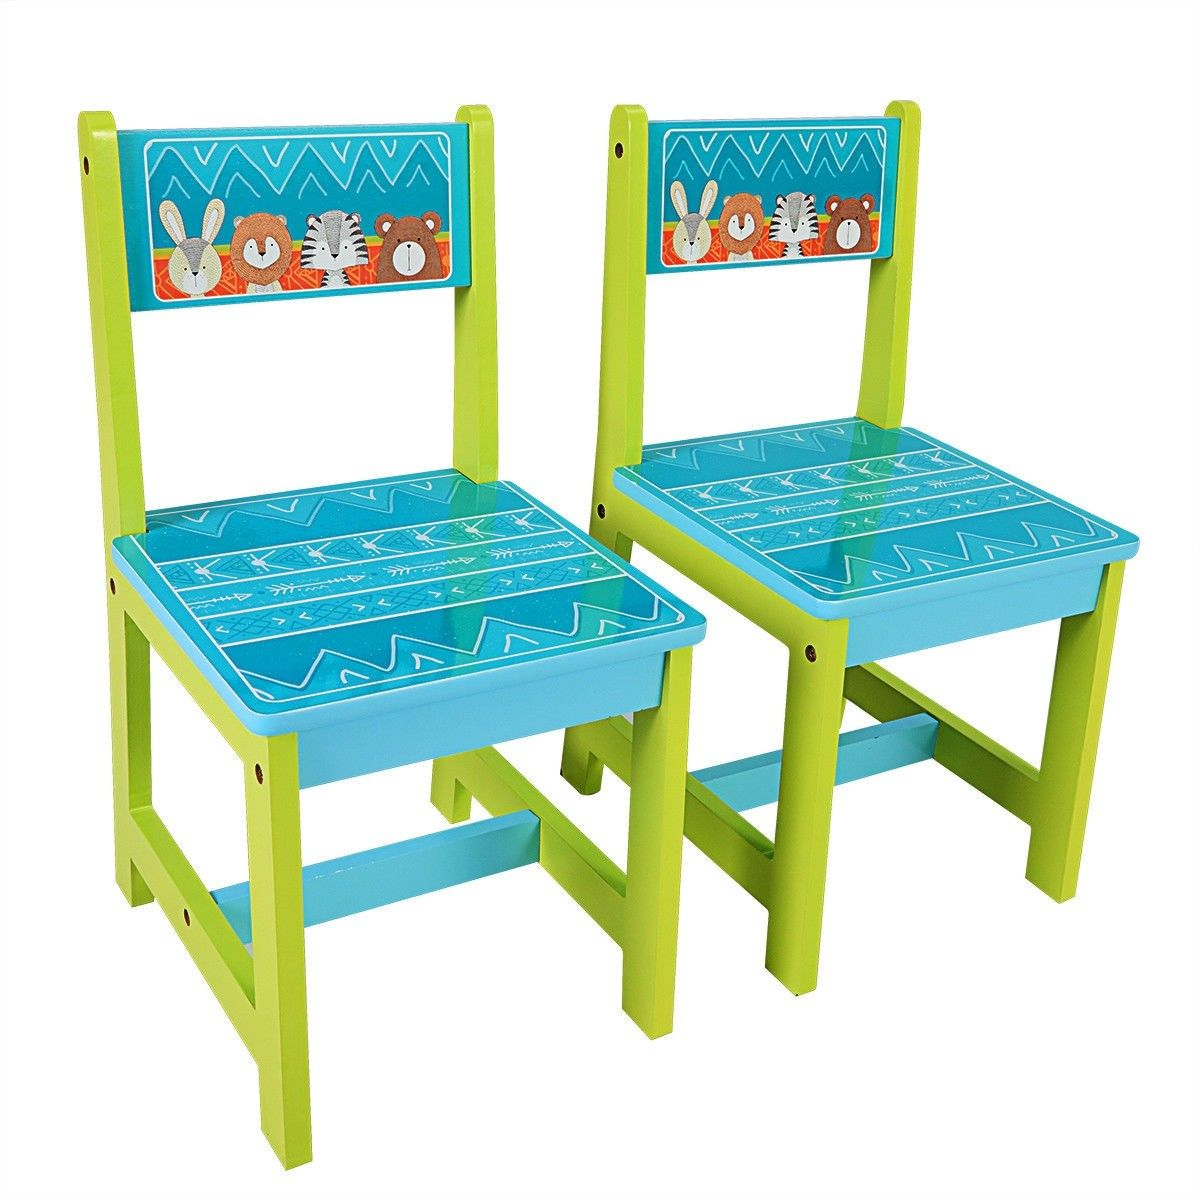 Kids Table And Chairs Set For Toddler Baby Furniture With Cartoon Pattern 62 95 Free Shipping Https Bit Ly Kids Table And Chairs Kids Table Set Kid Table